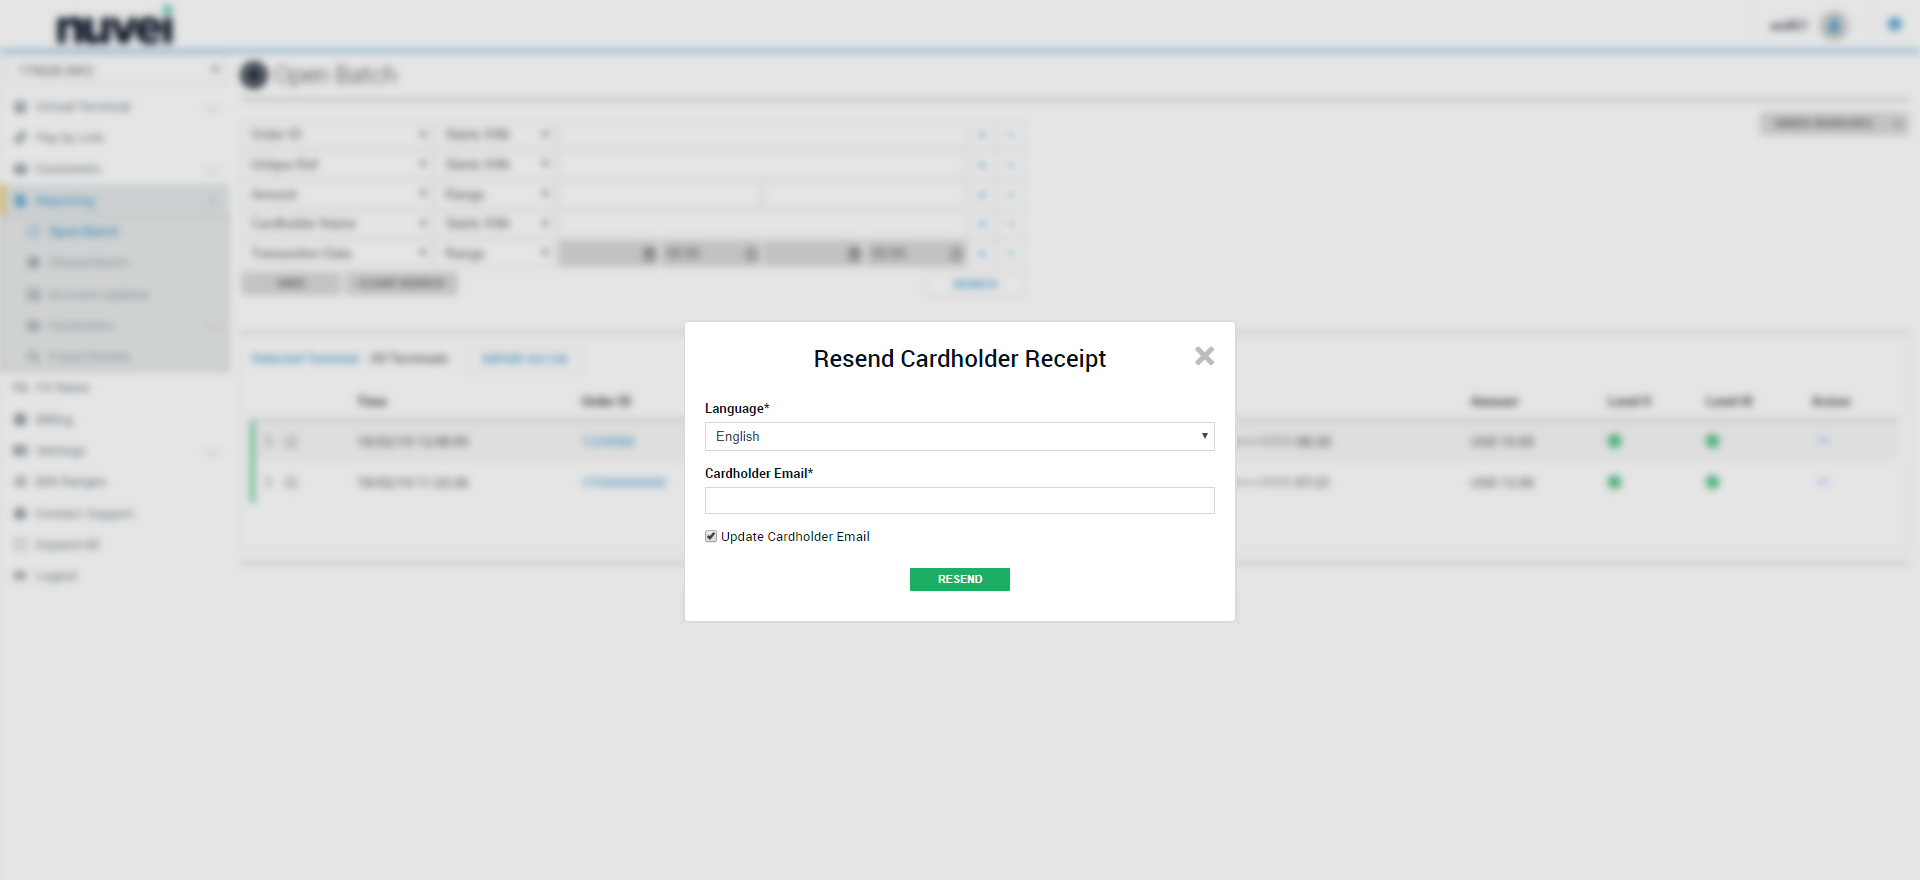 merchant:existing_merchant:selfcare_system:reporting:selfcare-openbatch-actions-resend_cardholder_receipt-nv.png